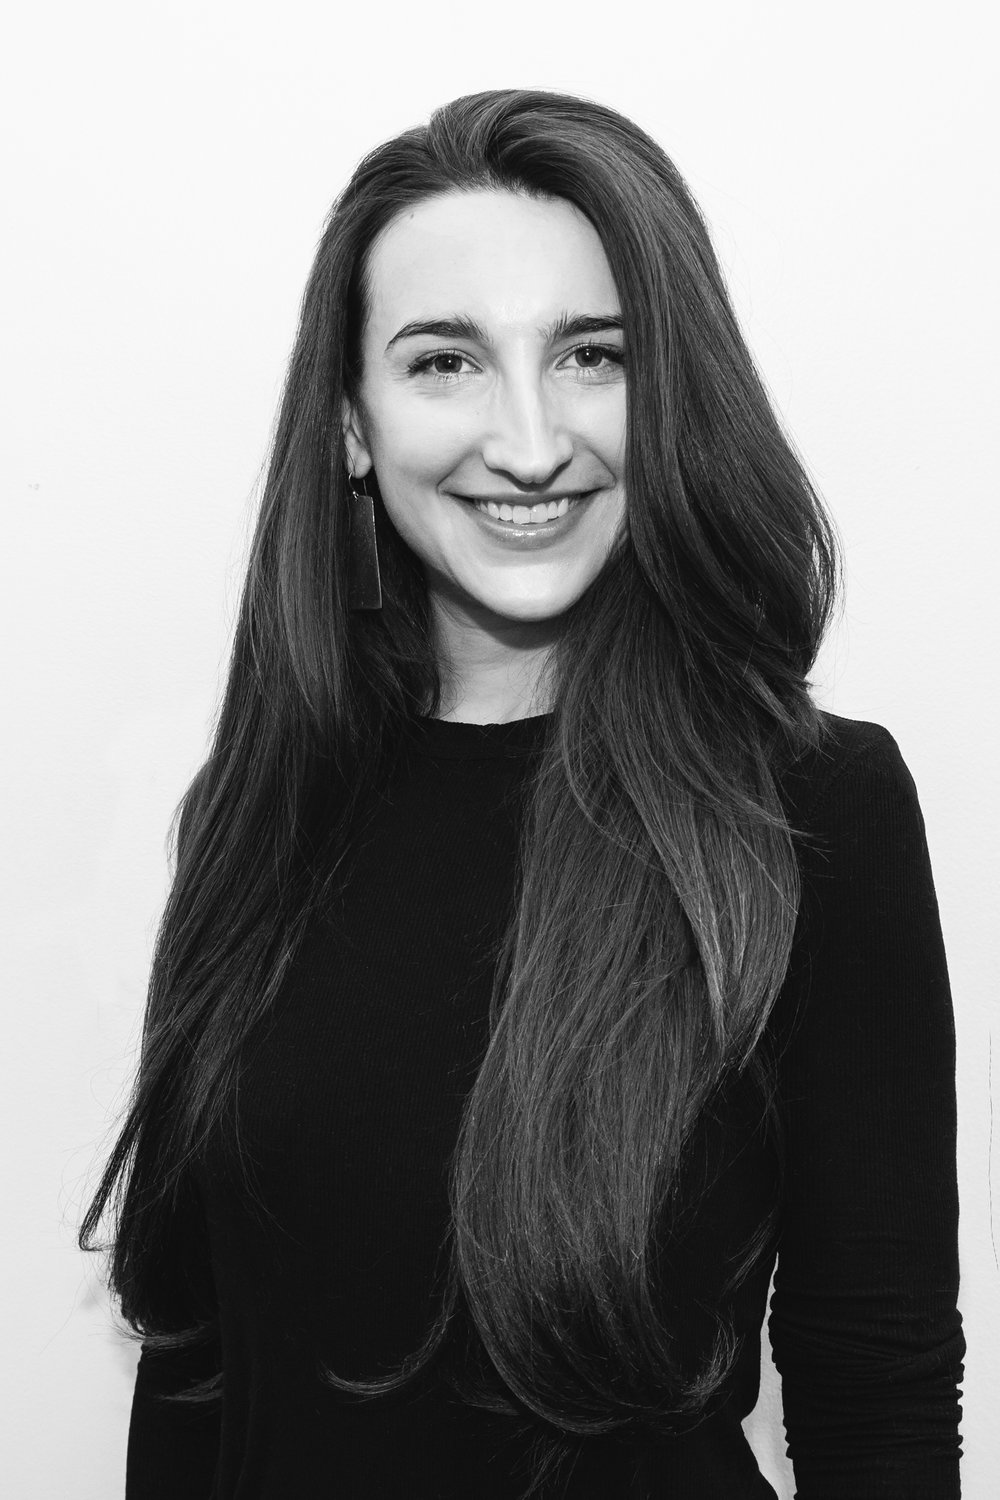 Marisa Zupan  is an experienced Strategy Consultant with a demonstrated history of working at all stages of the marketing funnel. Strong entrepreneurship professional skilled in Brand Strategy, Digital Strategy, Luxury BrandMarketing, Customer Insight and Advertising.